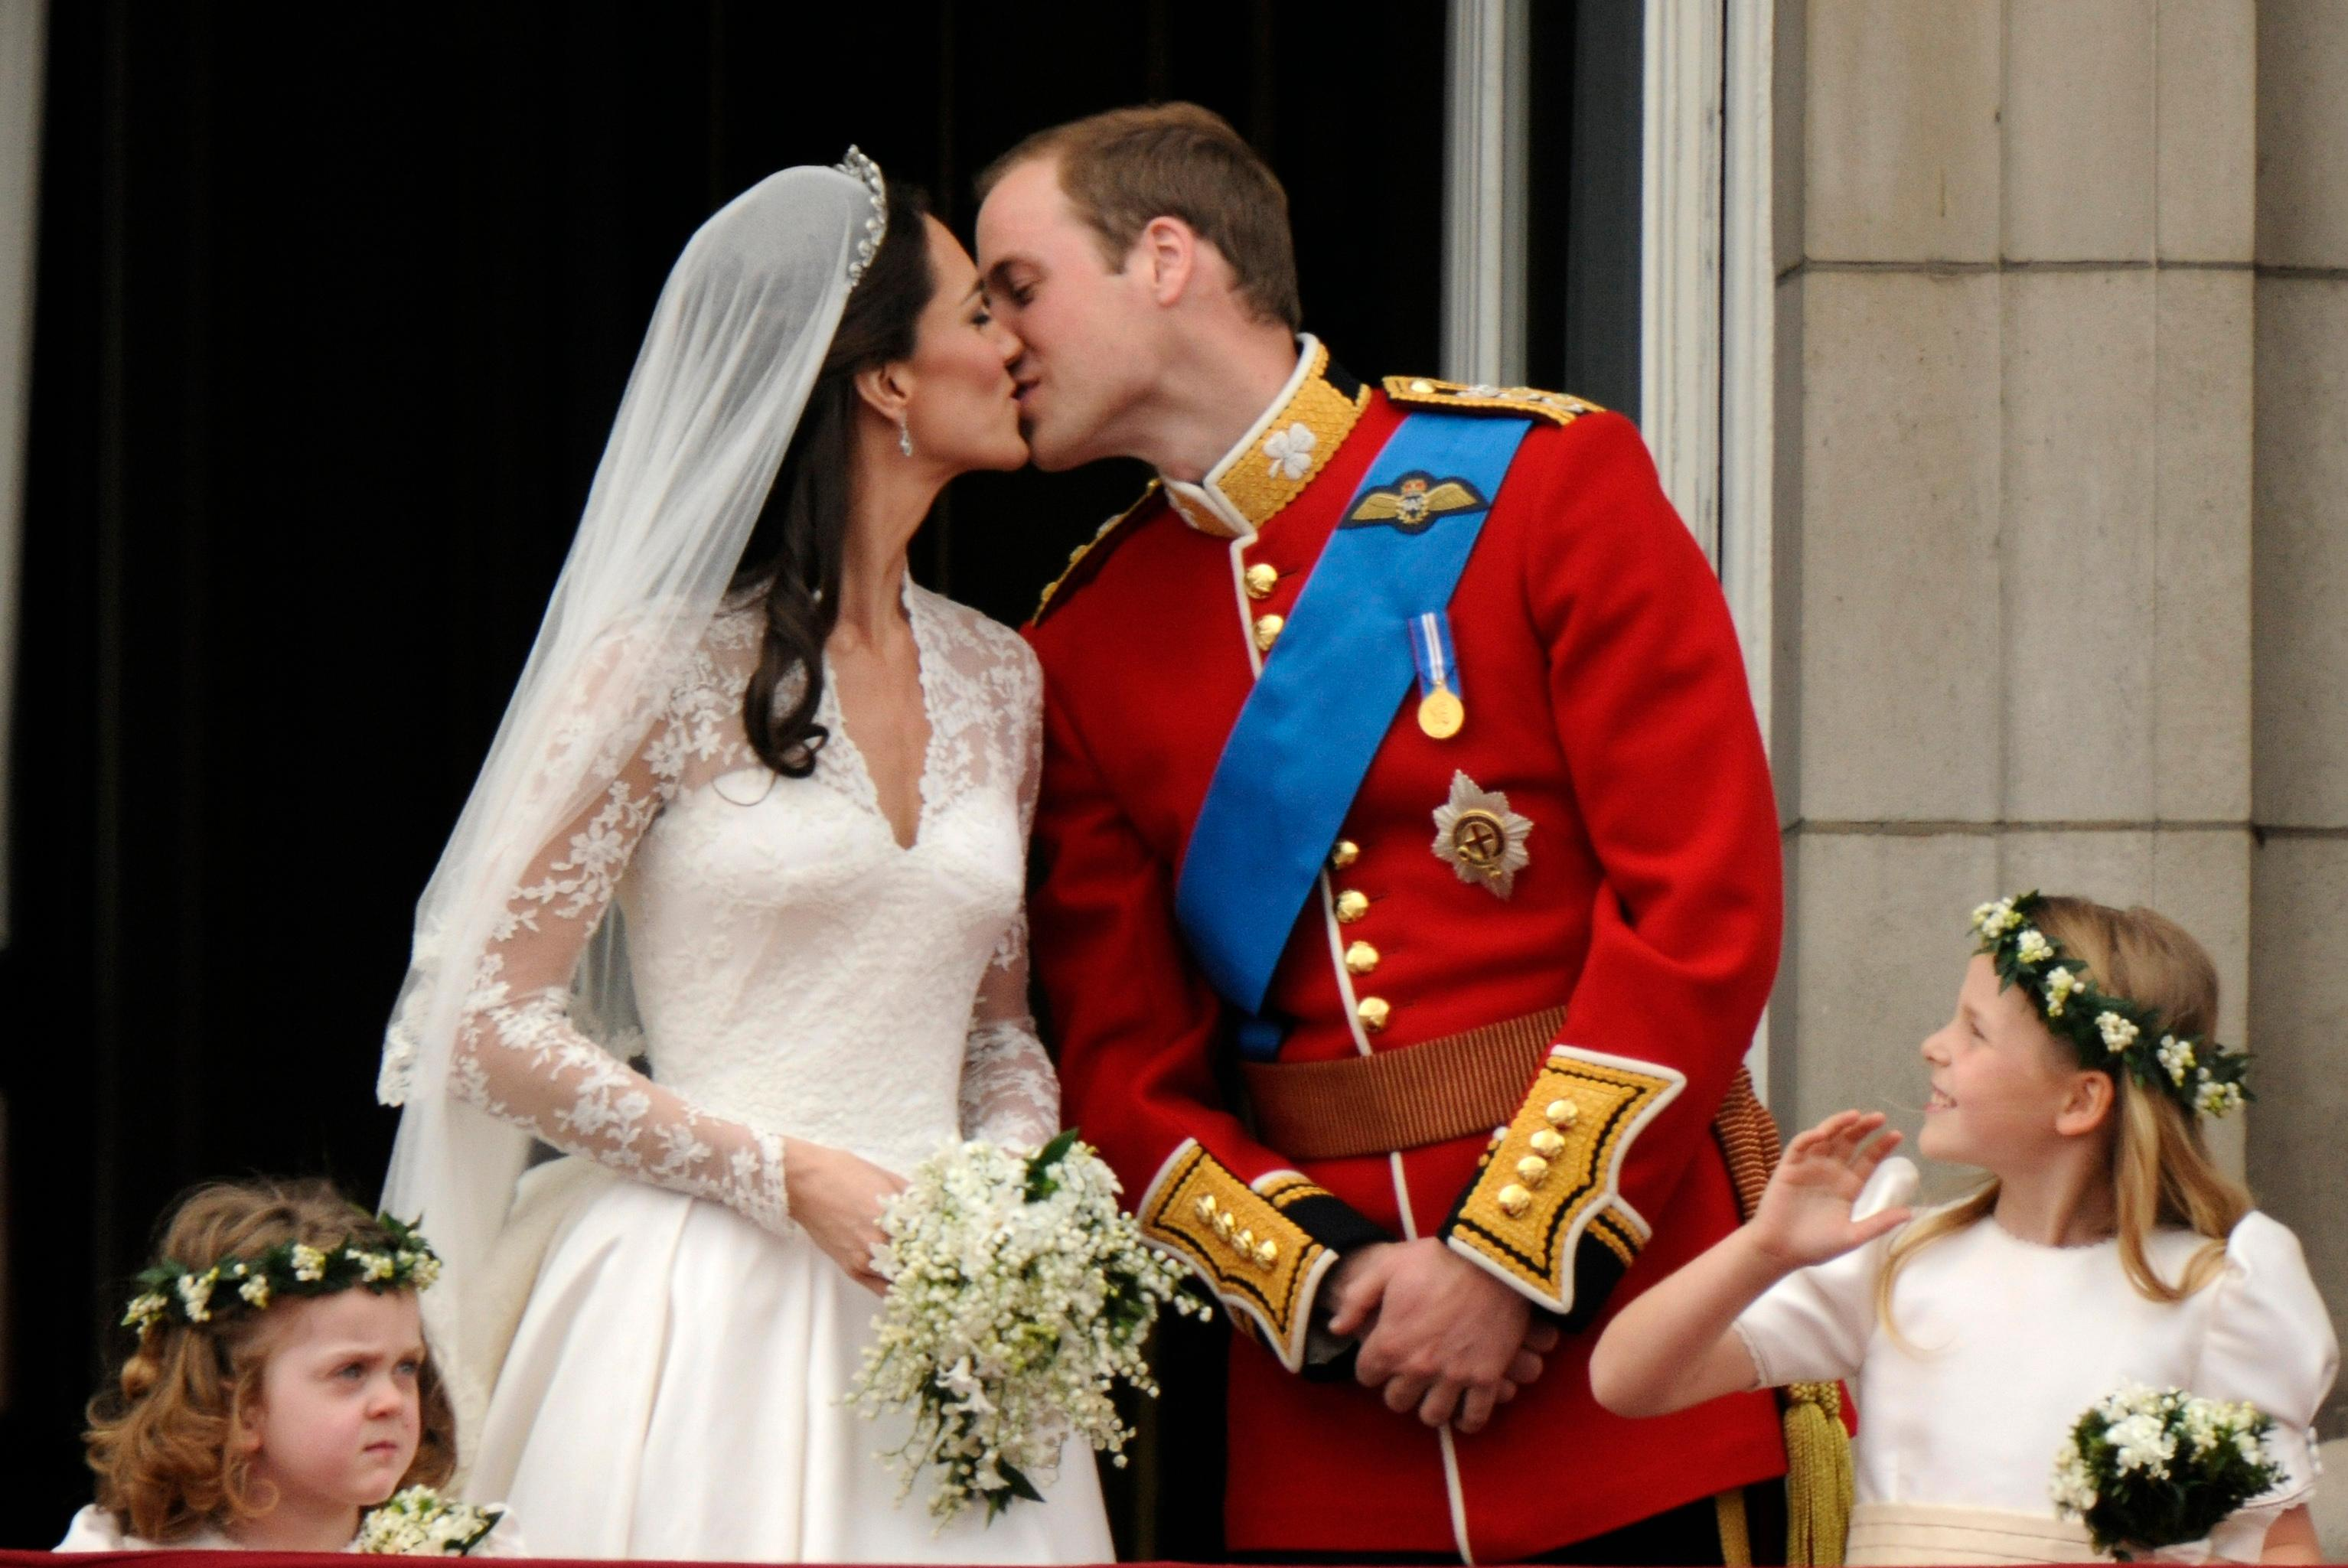 Os sete anos de casamento de William e Kate